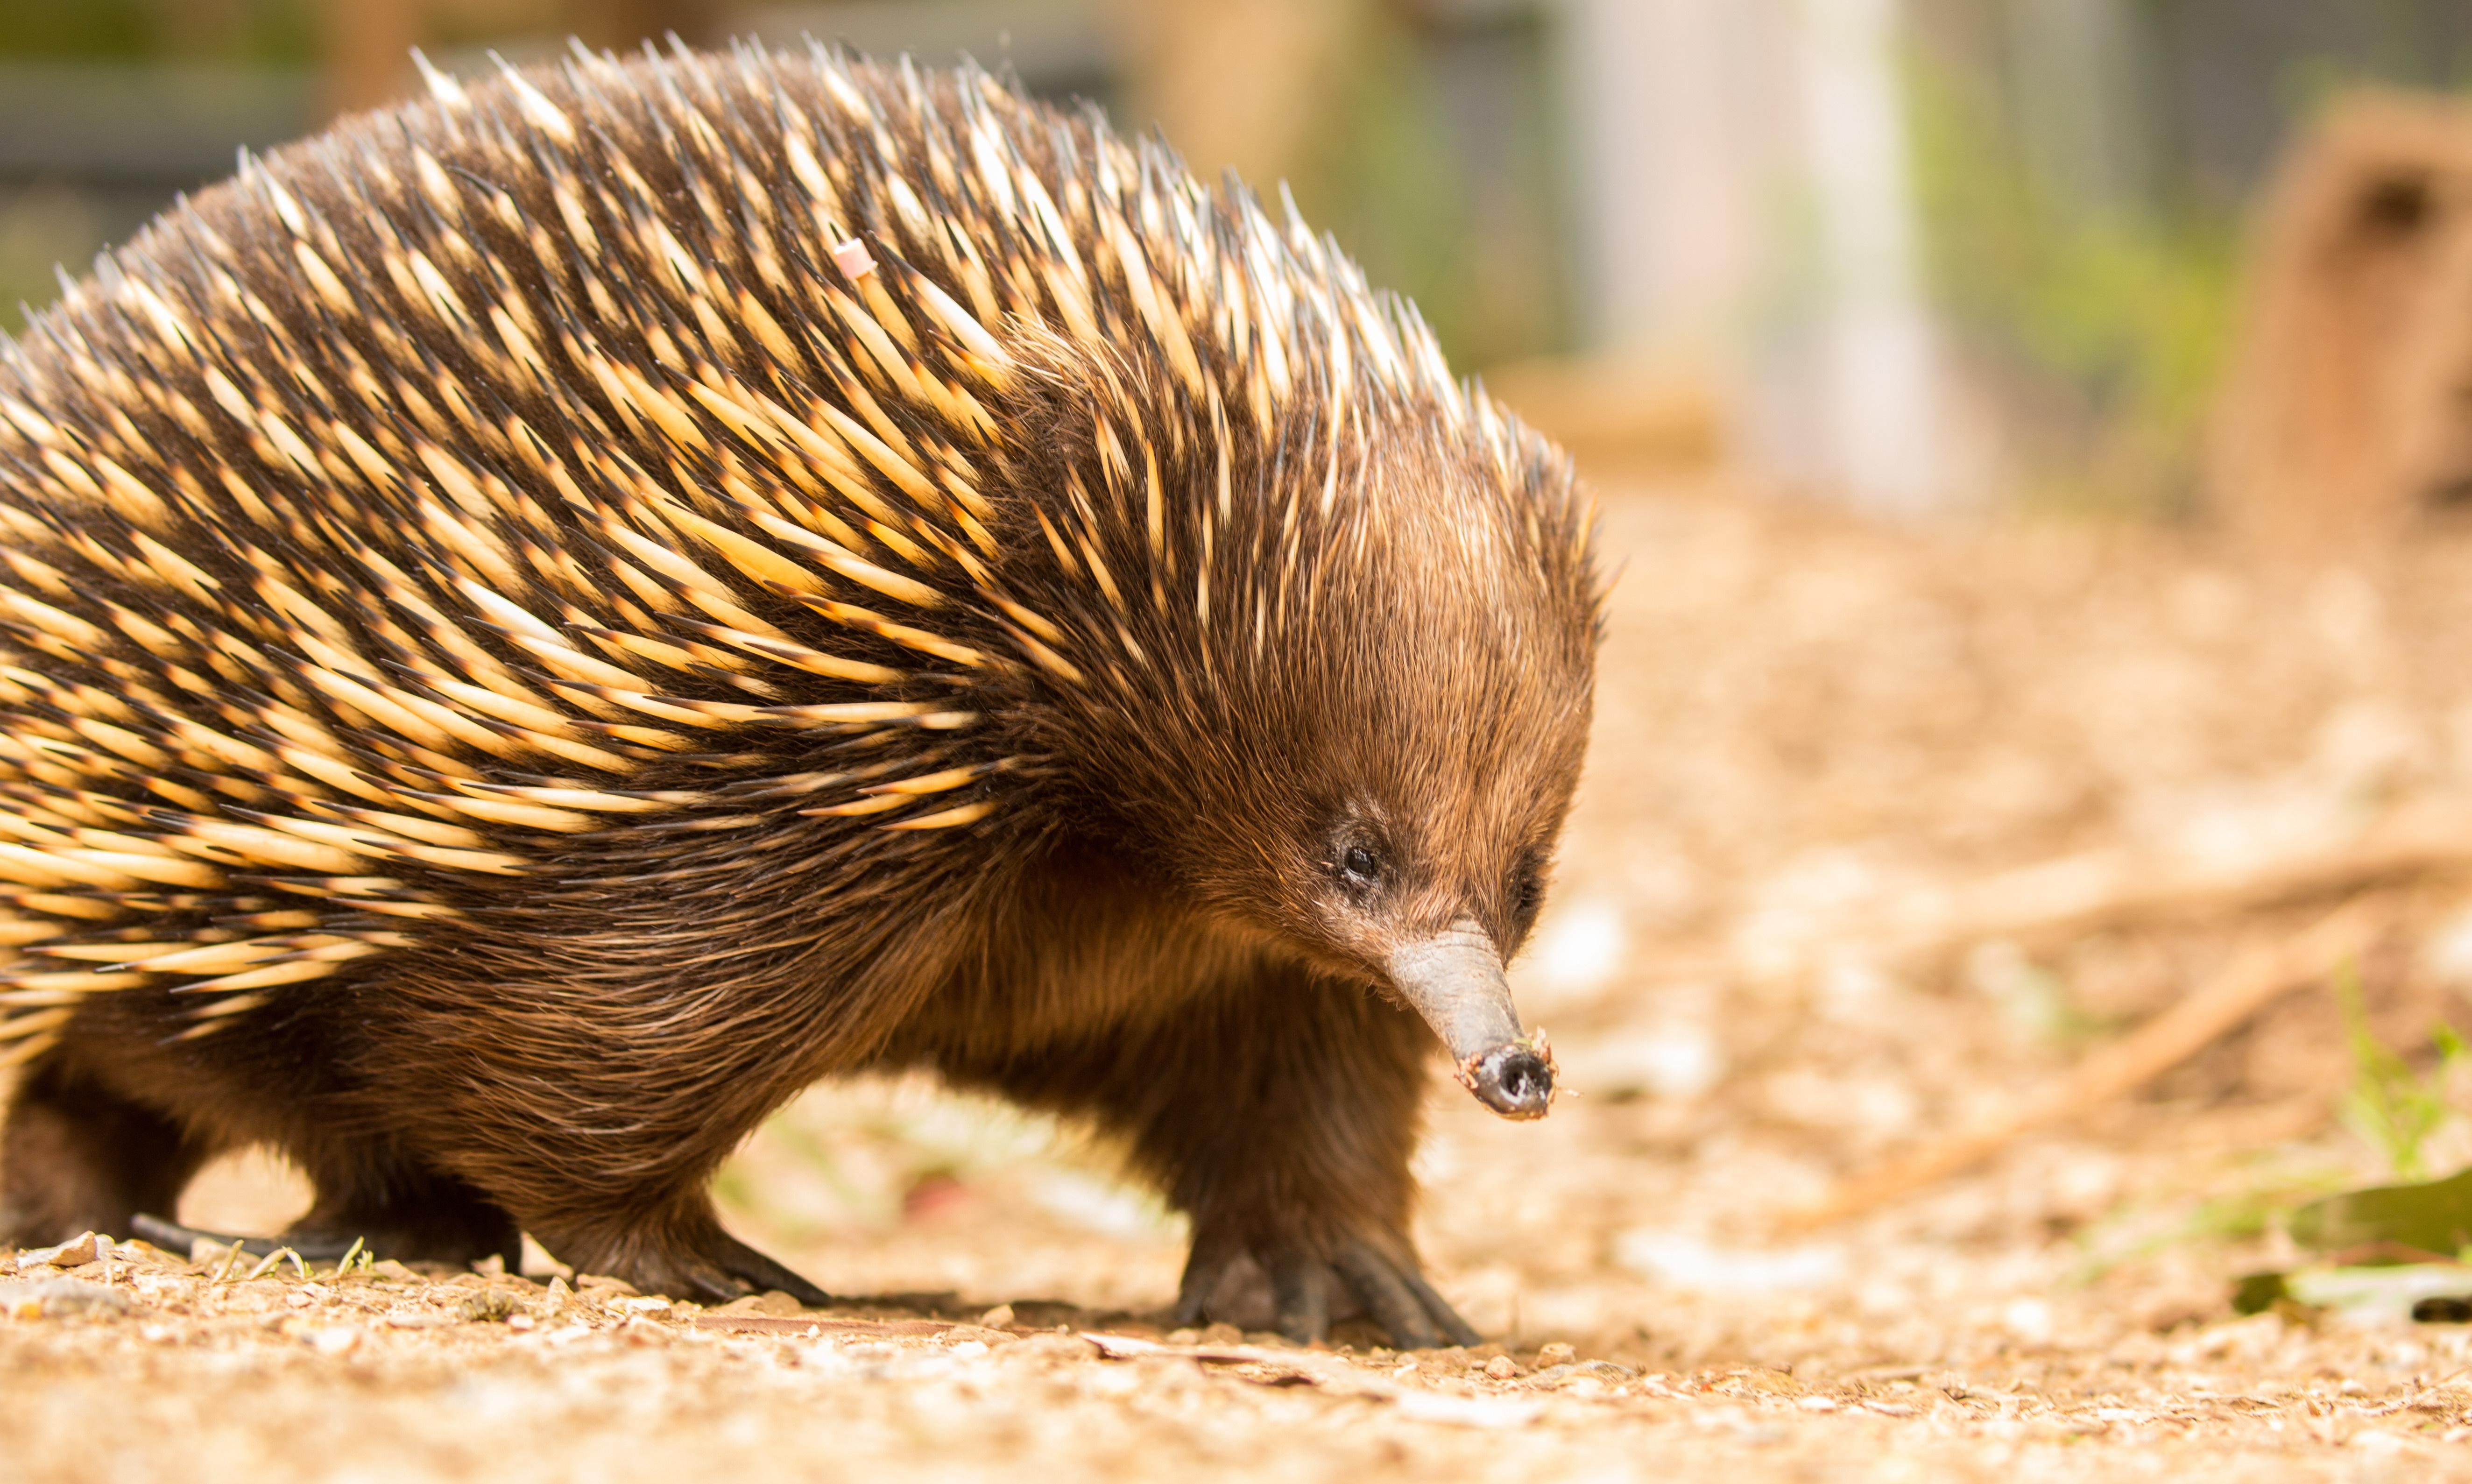 Matilda the echidna beats crippling ant allergy – with a little help from science